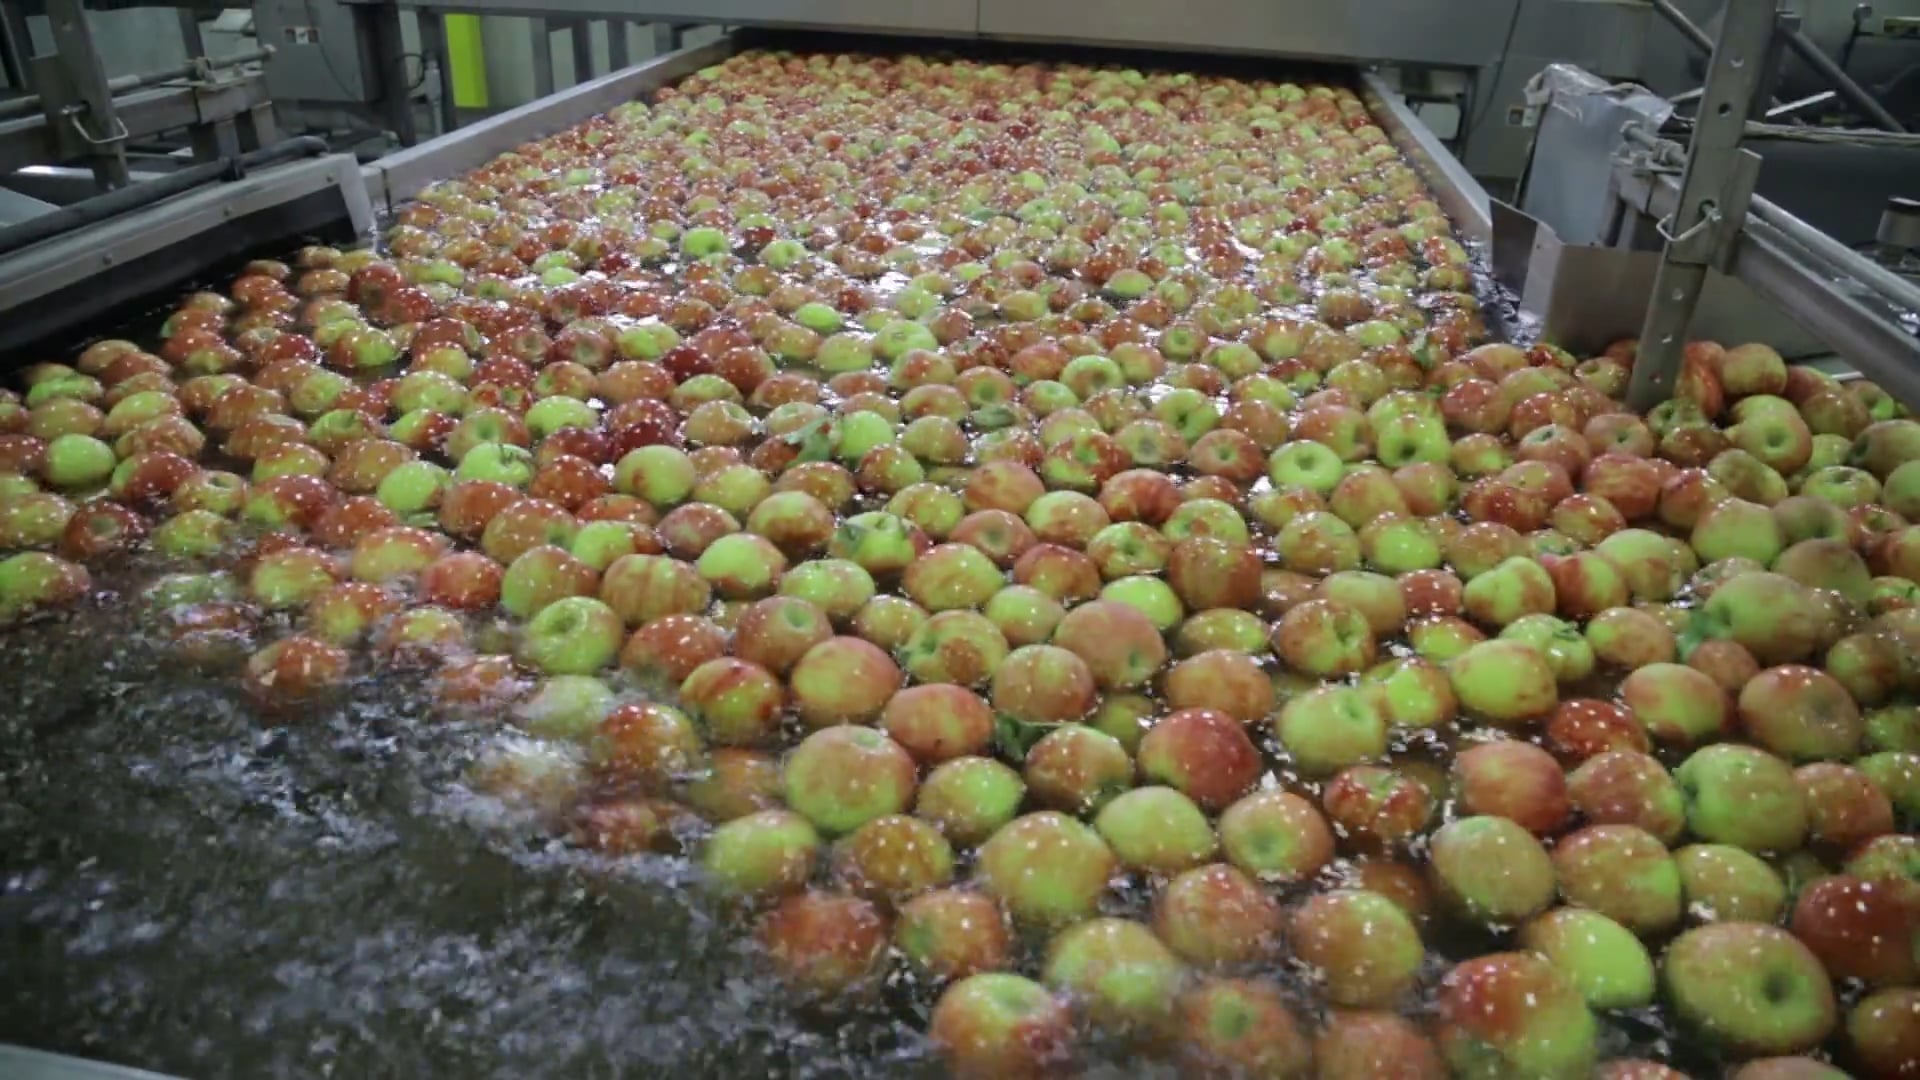 Automating Apples